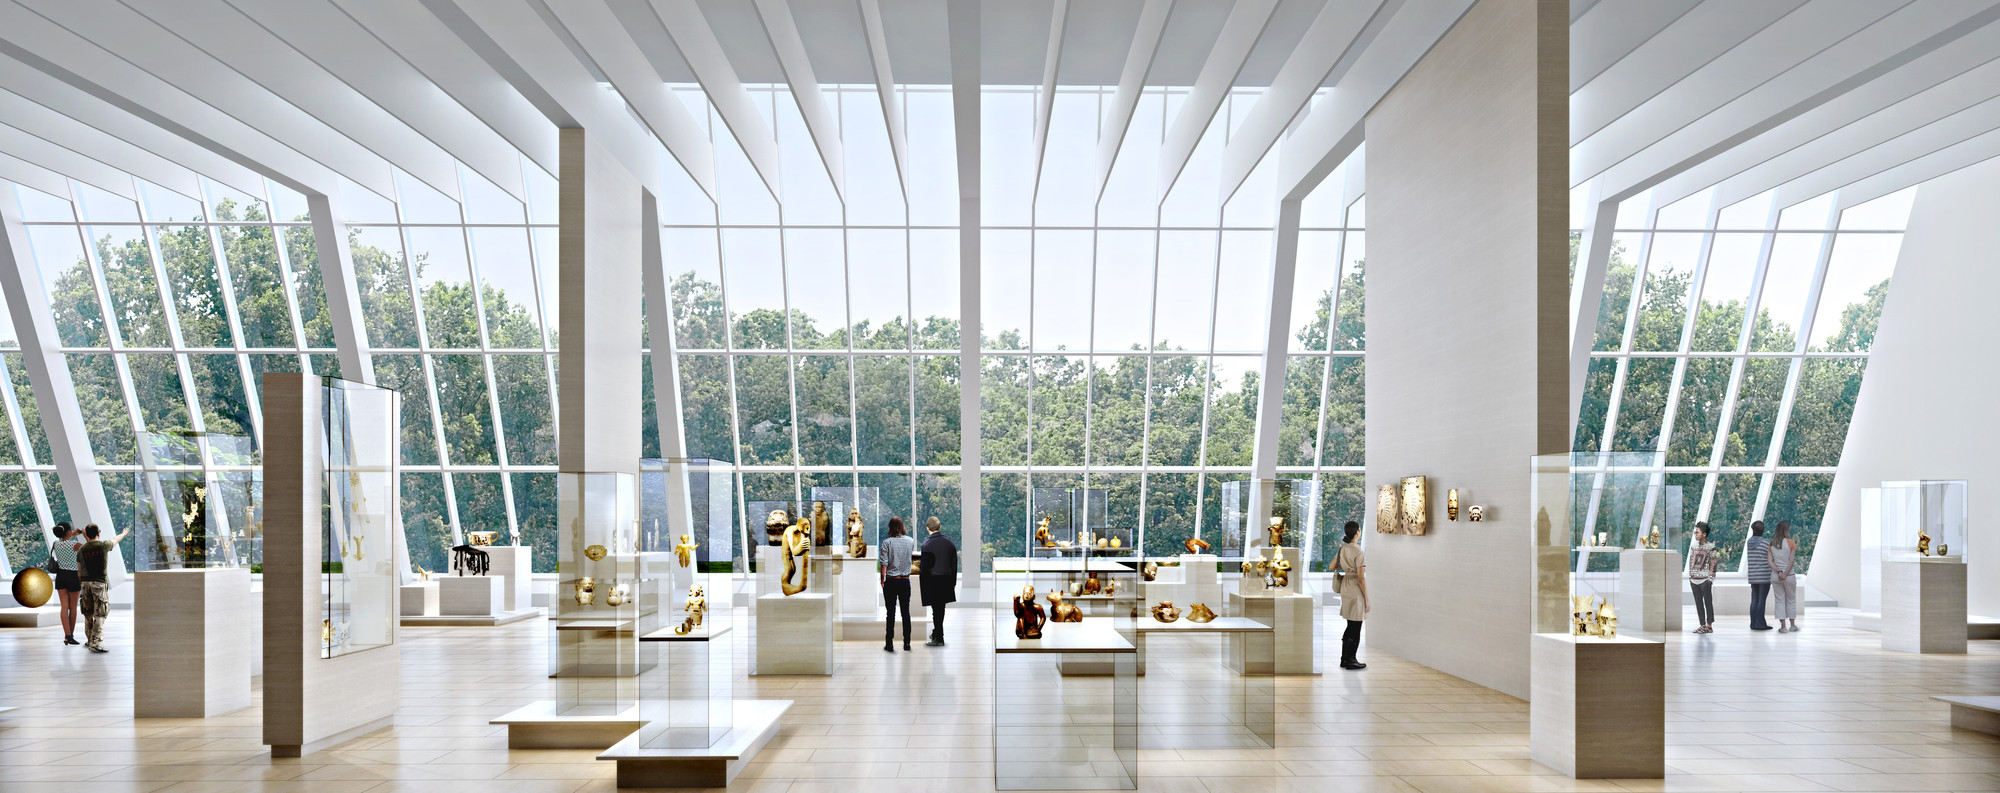 wHY's rendering of the planned regional galleries at The Metropolitan Museum of Art